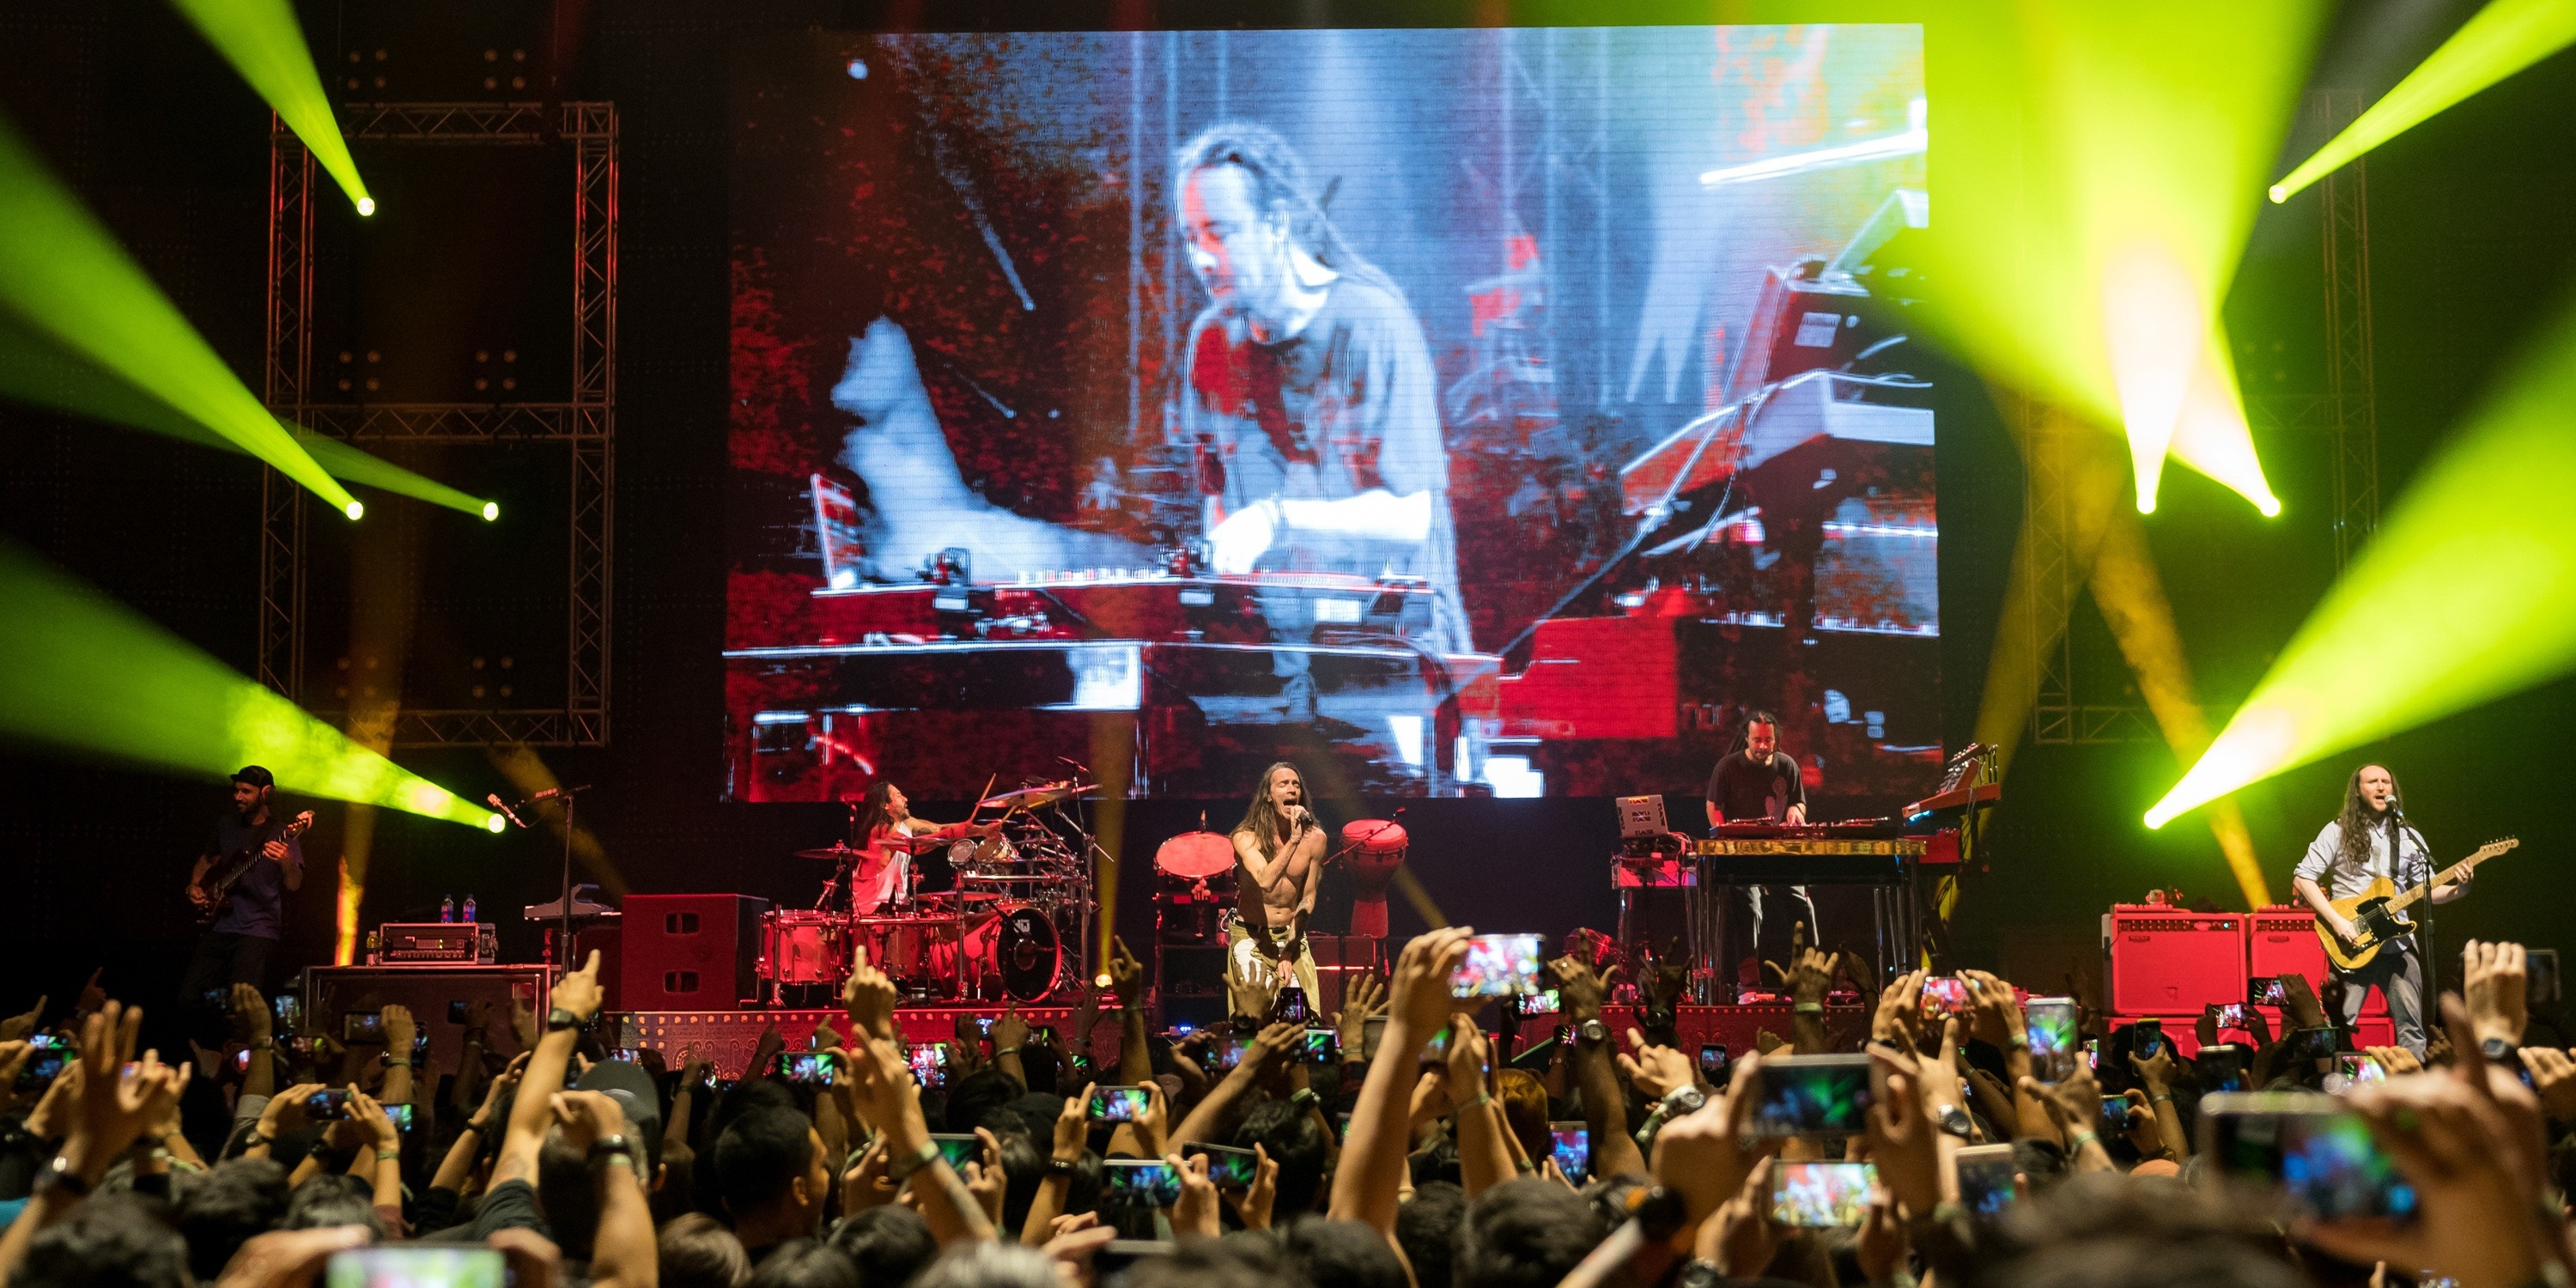 Mixing classics and new hits, Incubus prove they've still got it – gig report